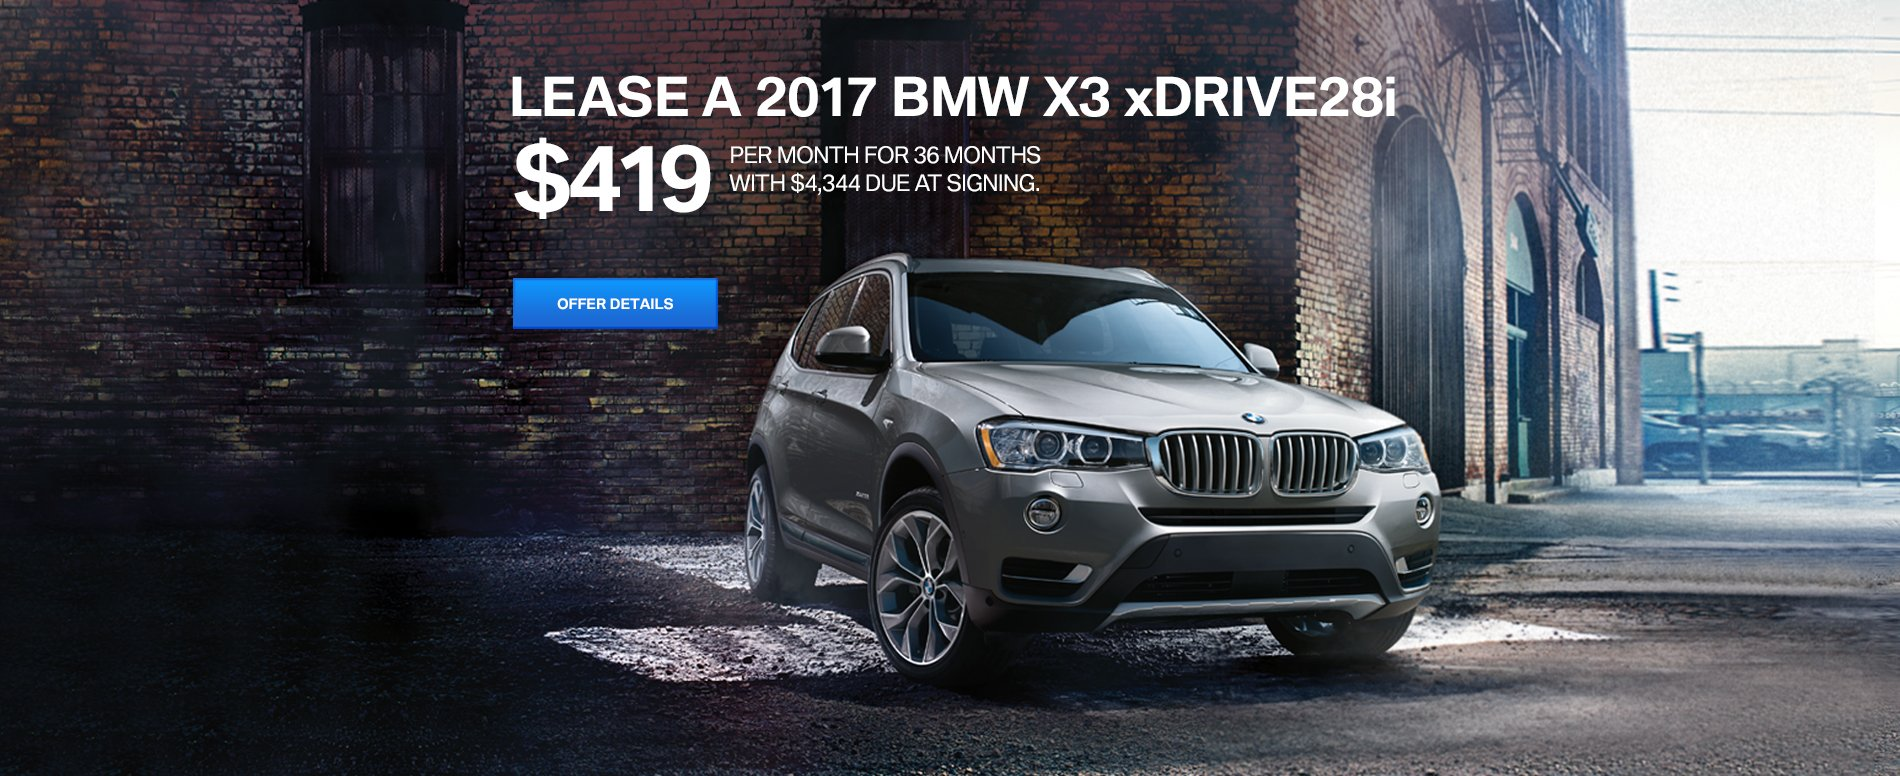 LEASE A 2017 X3 28i xDRIVE FOR $419/MO FOR 36 MONTHS